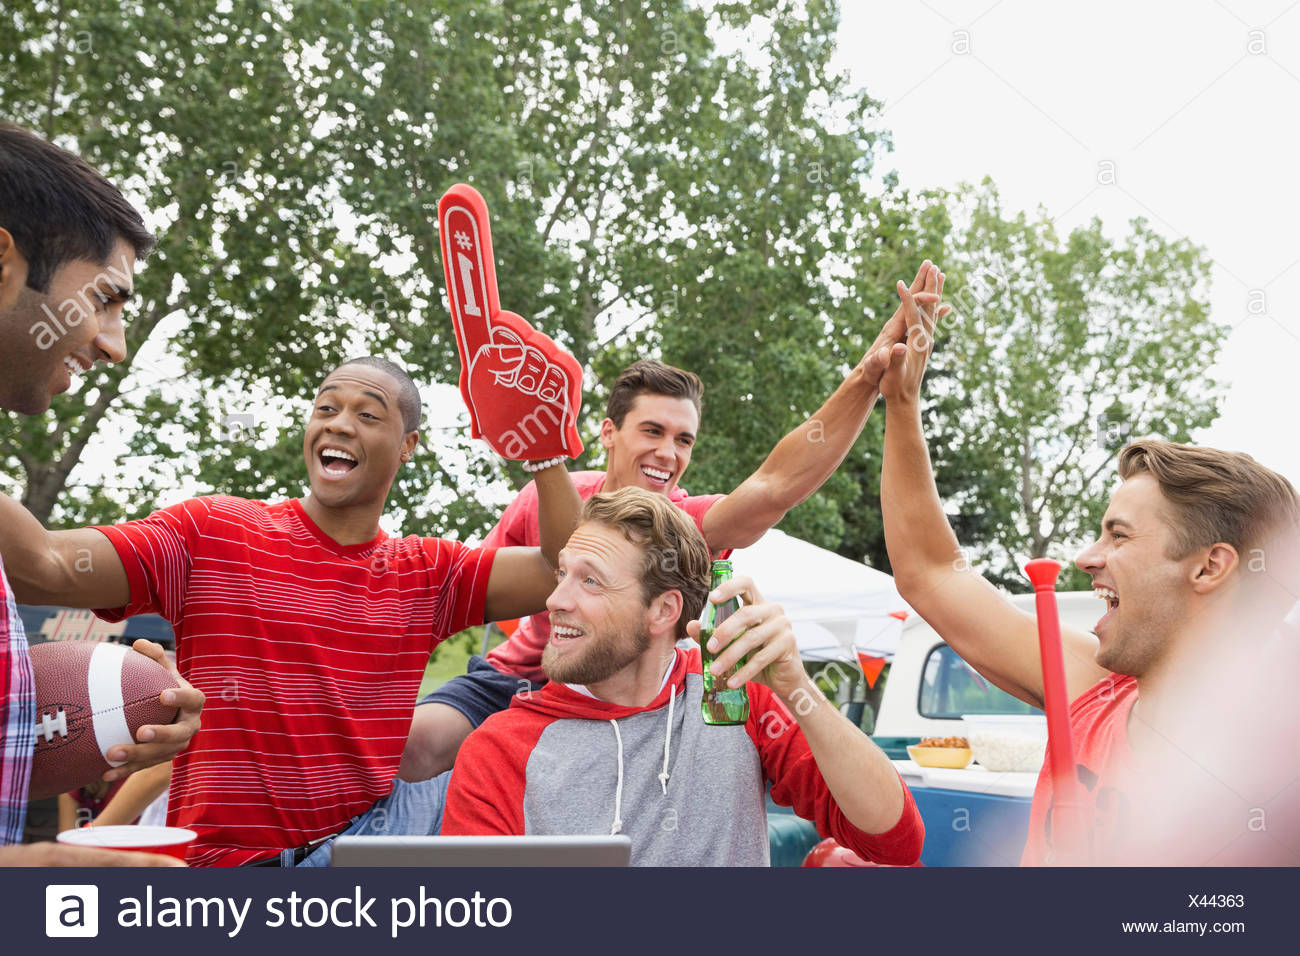 Men cheering at barbecue hayon dans la zone Photo Stock